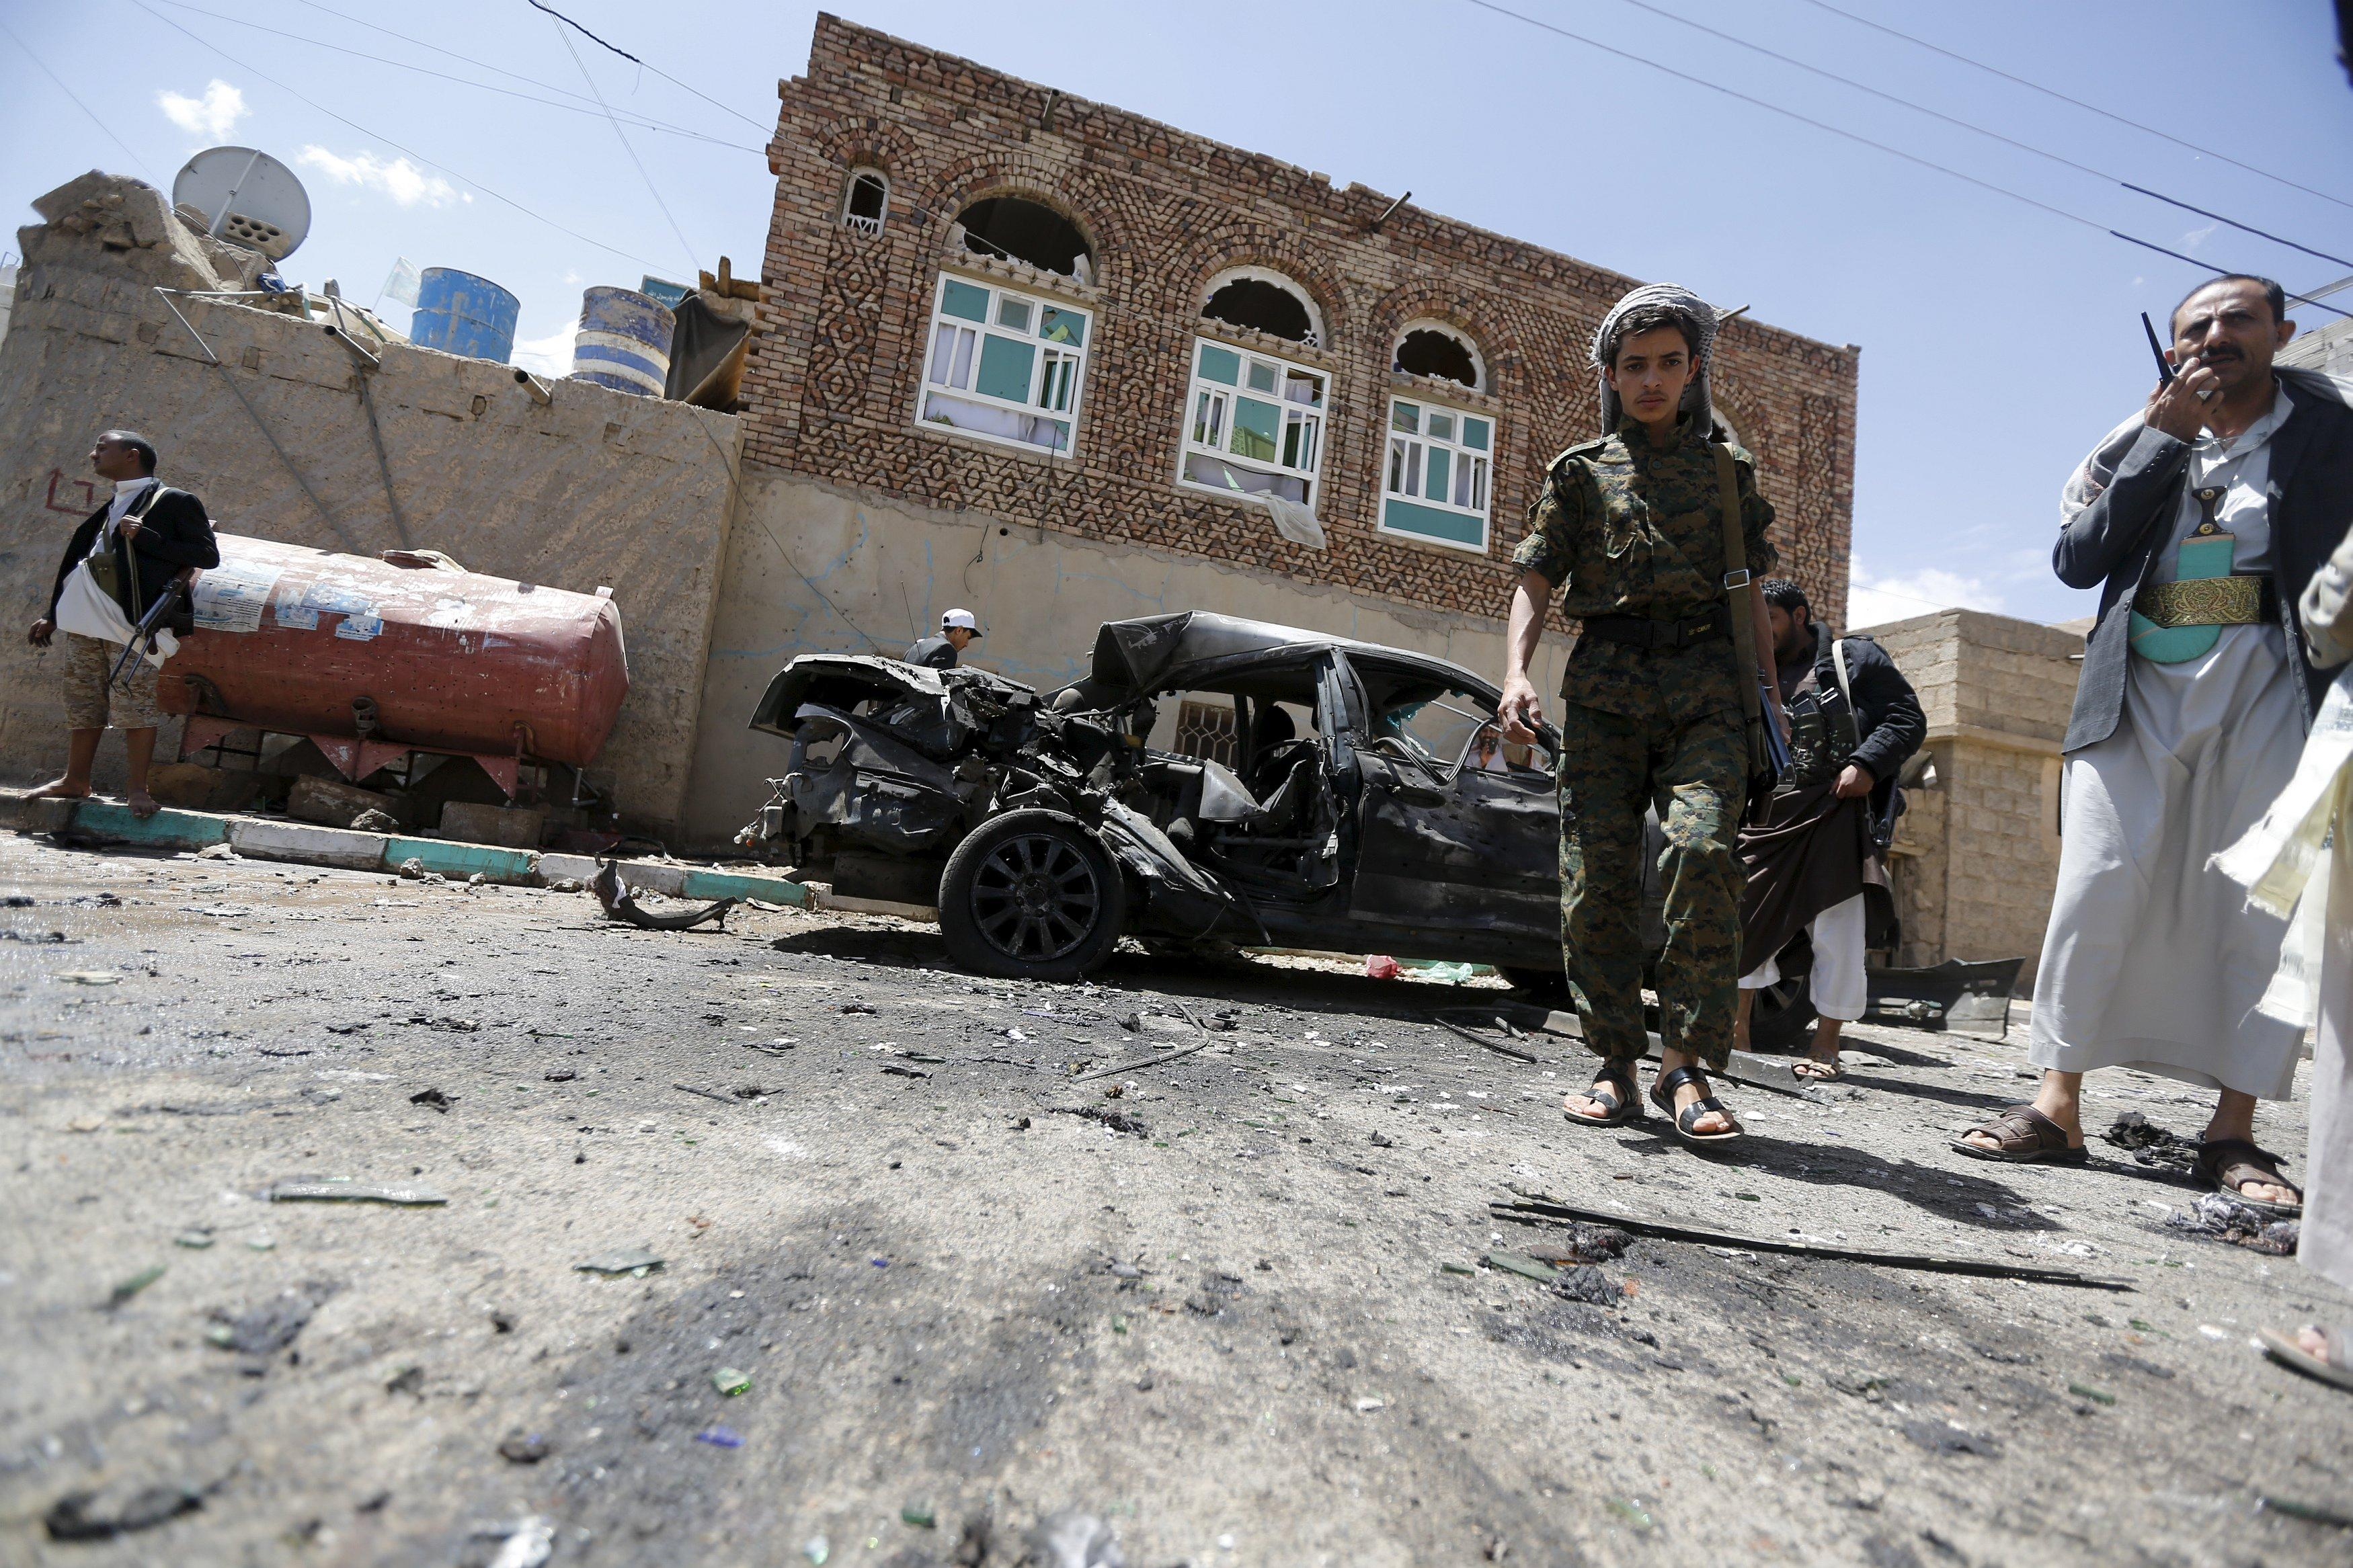 Houthi militants stand at the scene of a suicide bombing outside a mosque in Sanaa March 20, 2015. At least 87 people were killed when four suicide bombers blew themselves up in two mosques in the Yemeni capital Sanaa during Friday prayers, a medical source told Reuters. The source said at least 260 people were wounded in the blasts. Both mosques are known to be used mainly by supporters of the Shi'ite Muslim Houthi group which has seized control of the government. REUTERS/Khaled Abdullah